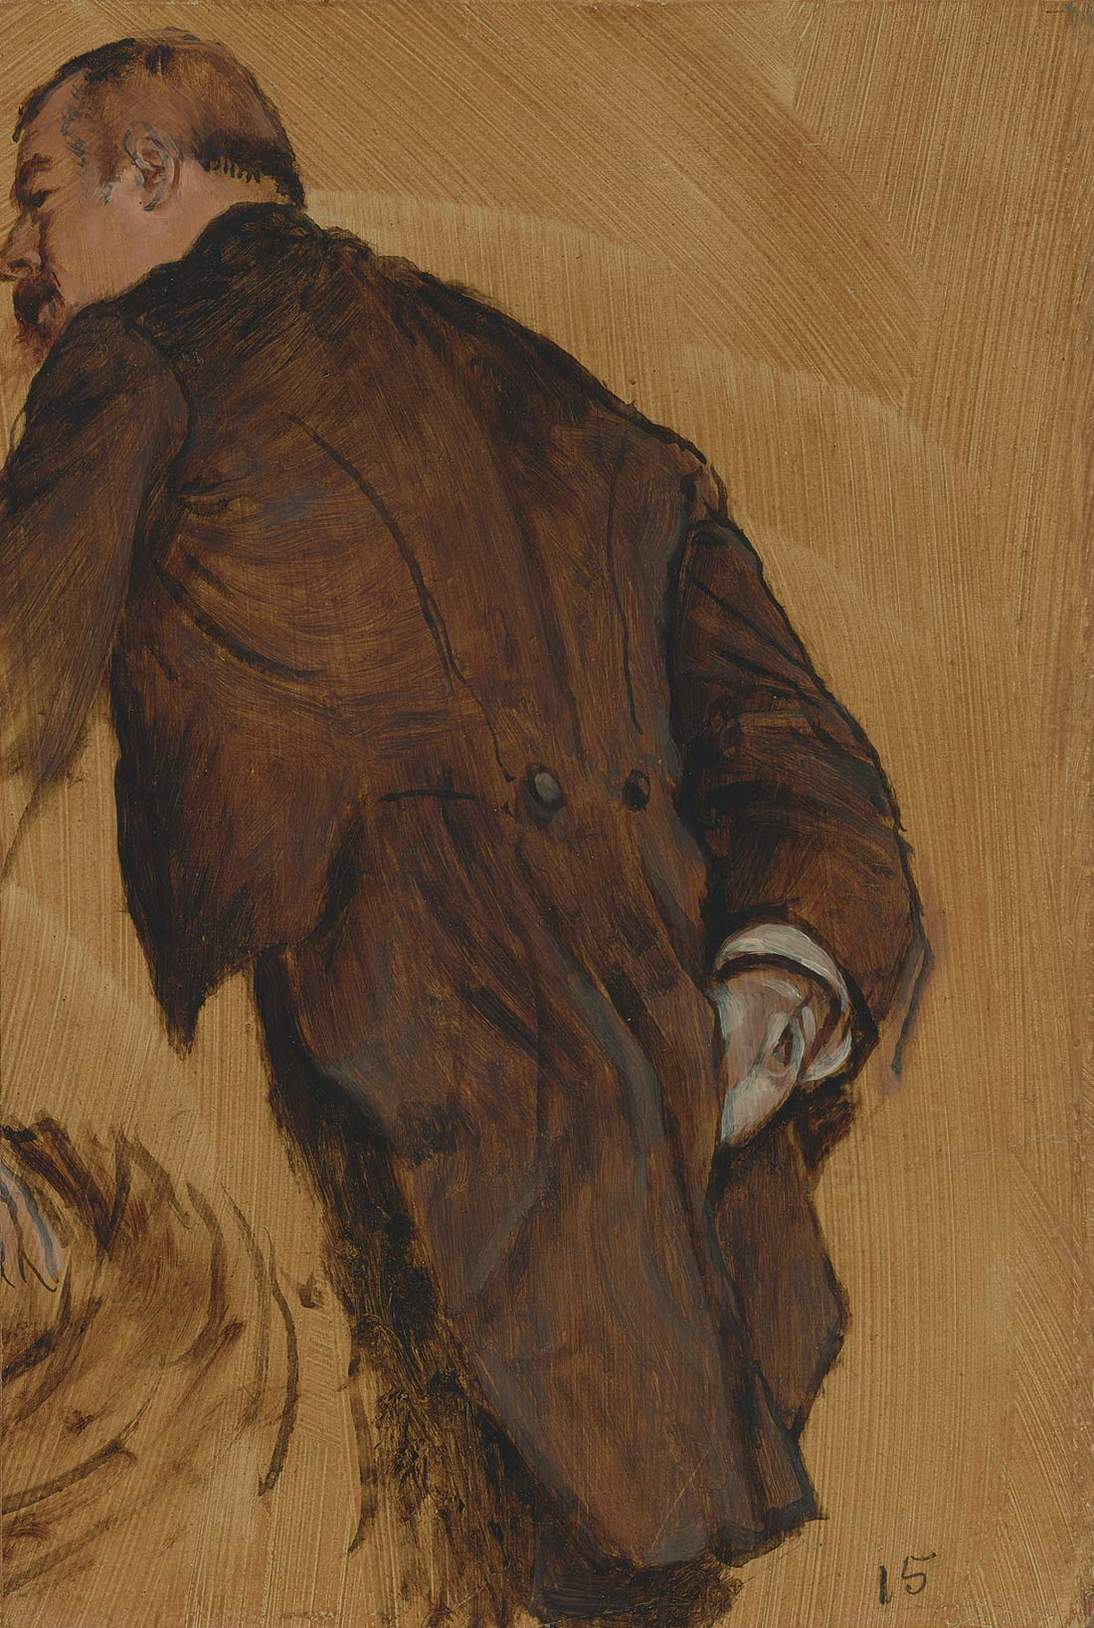 """Attributed to Edgar Degas, """"The Impresario,"""" ca. 1877. Oil on paper board, 15 x 10 in. (38.1 x 25.4 cm). Fine Arts Museums of San Francisco, Gift of Mr. and Mrs. Louis A. Benoist, 1956.72"""